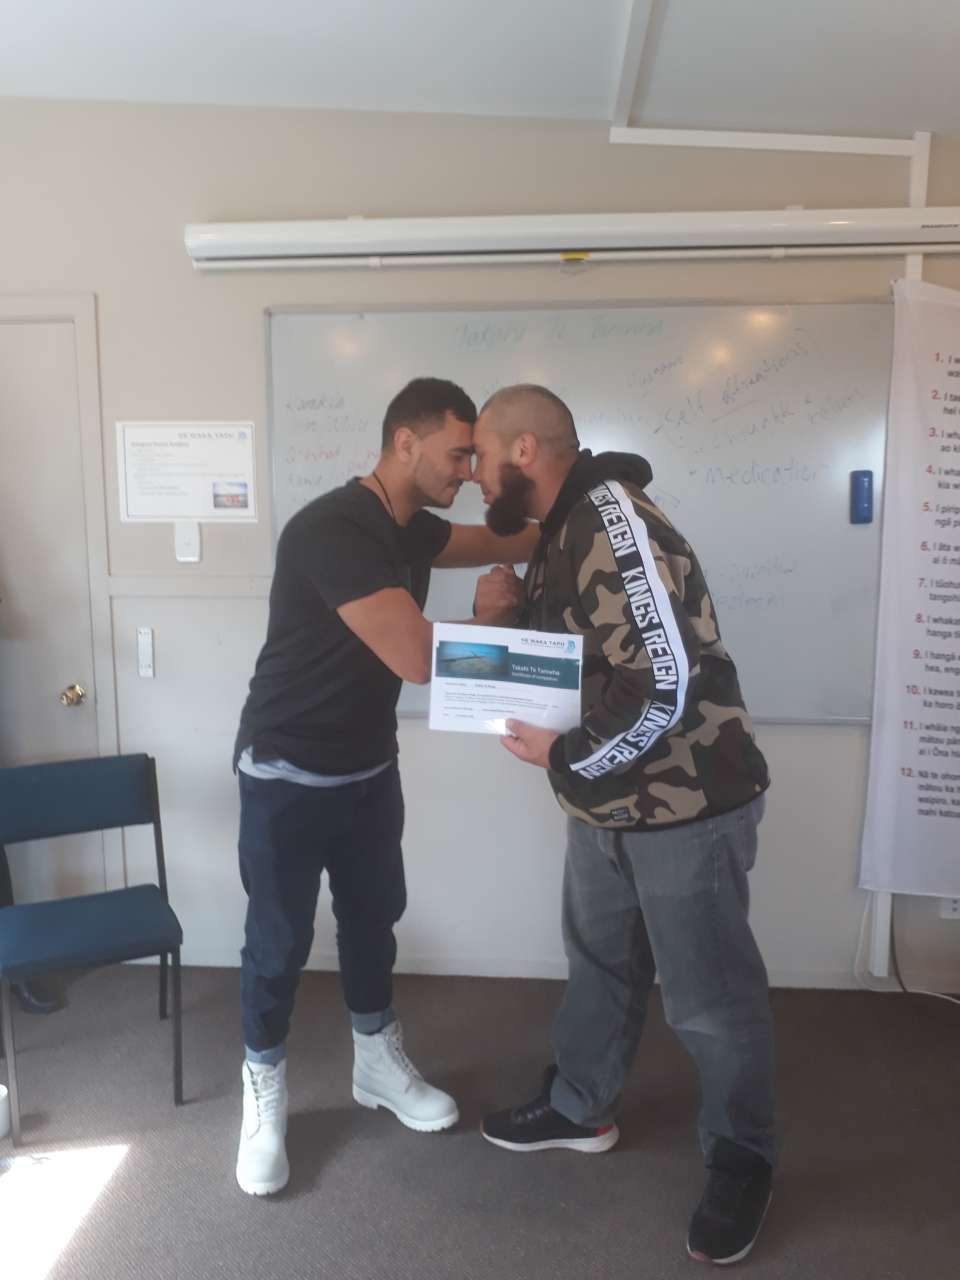 Huge mihi to Dallas Te Rangi for graduating on the Takahi Te Taniwha (TTT)Kei te mihi nui ki a Dallas well done!This is your chance now to practice what you have added to your kete. Keep beating that flew matua! Tena koe!ALSO there's your hongi photo you wanted :)  #TTTGRADUATE:)